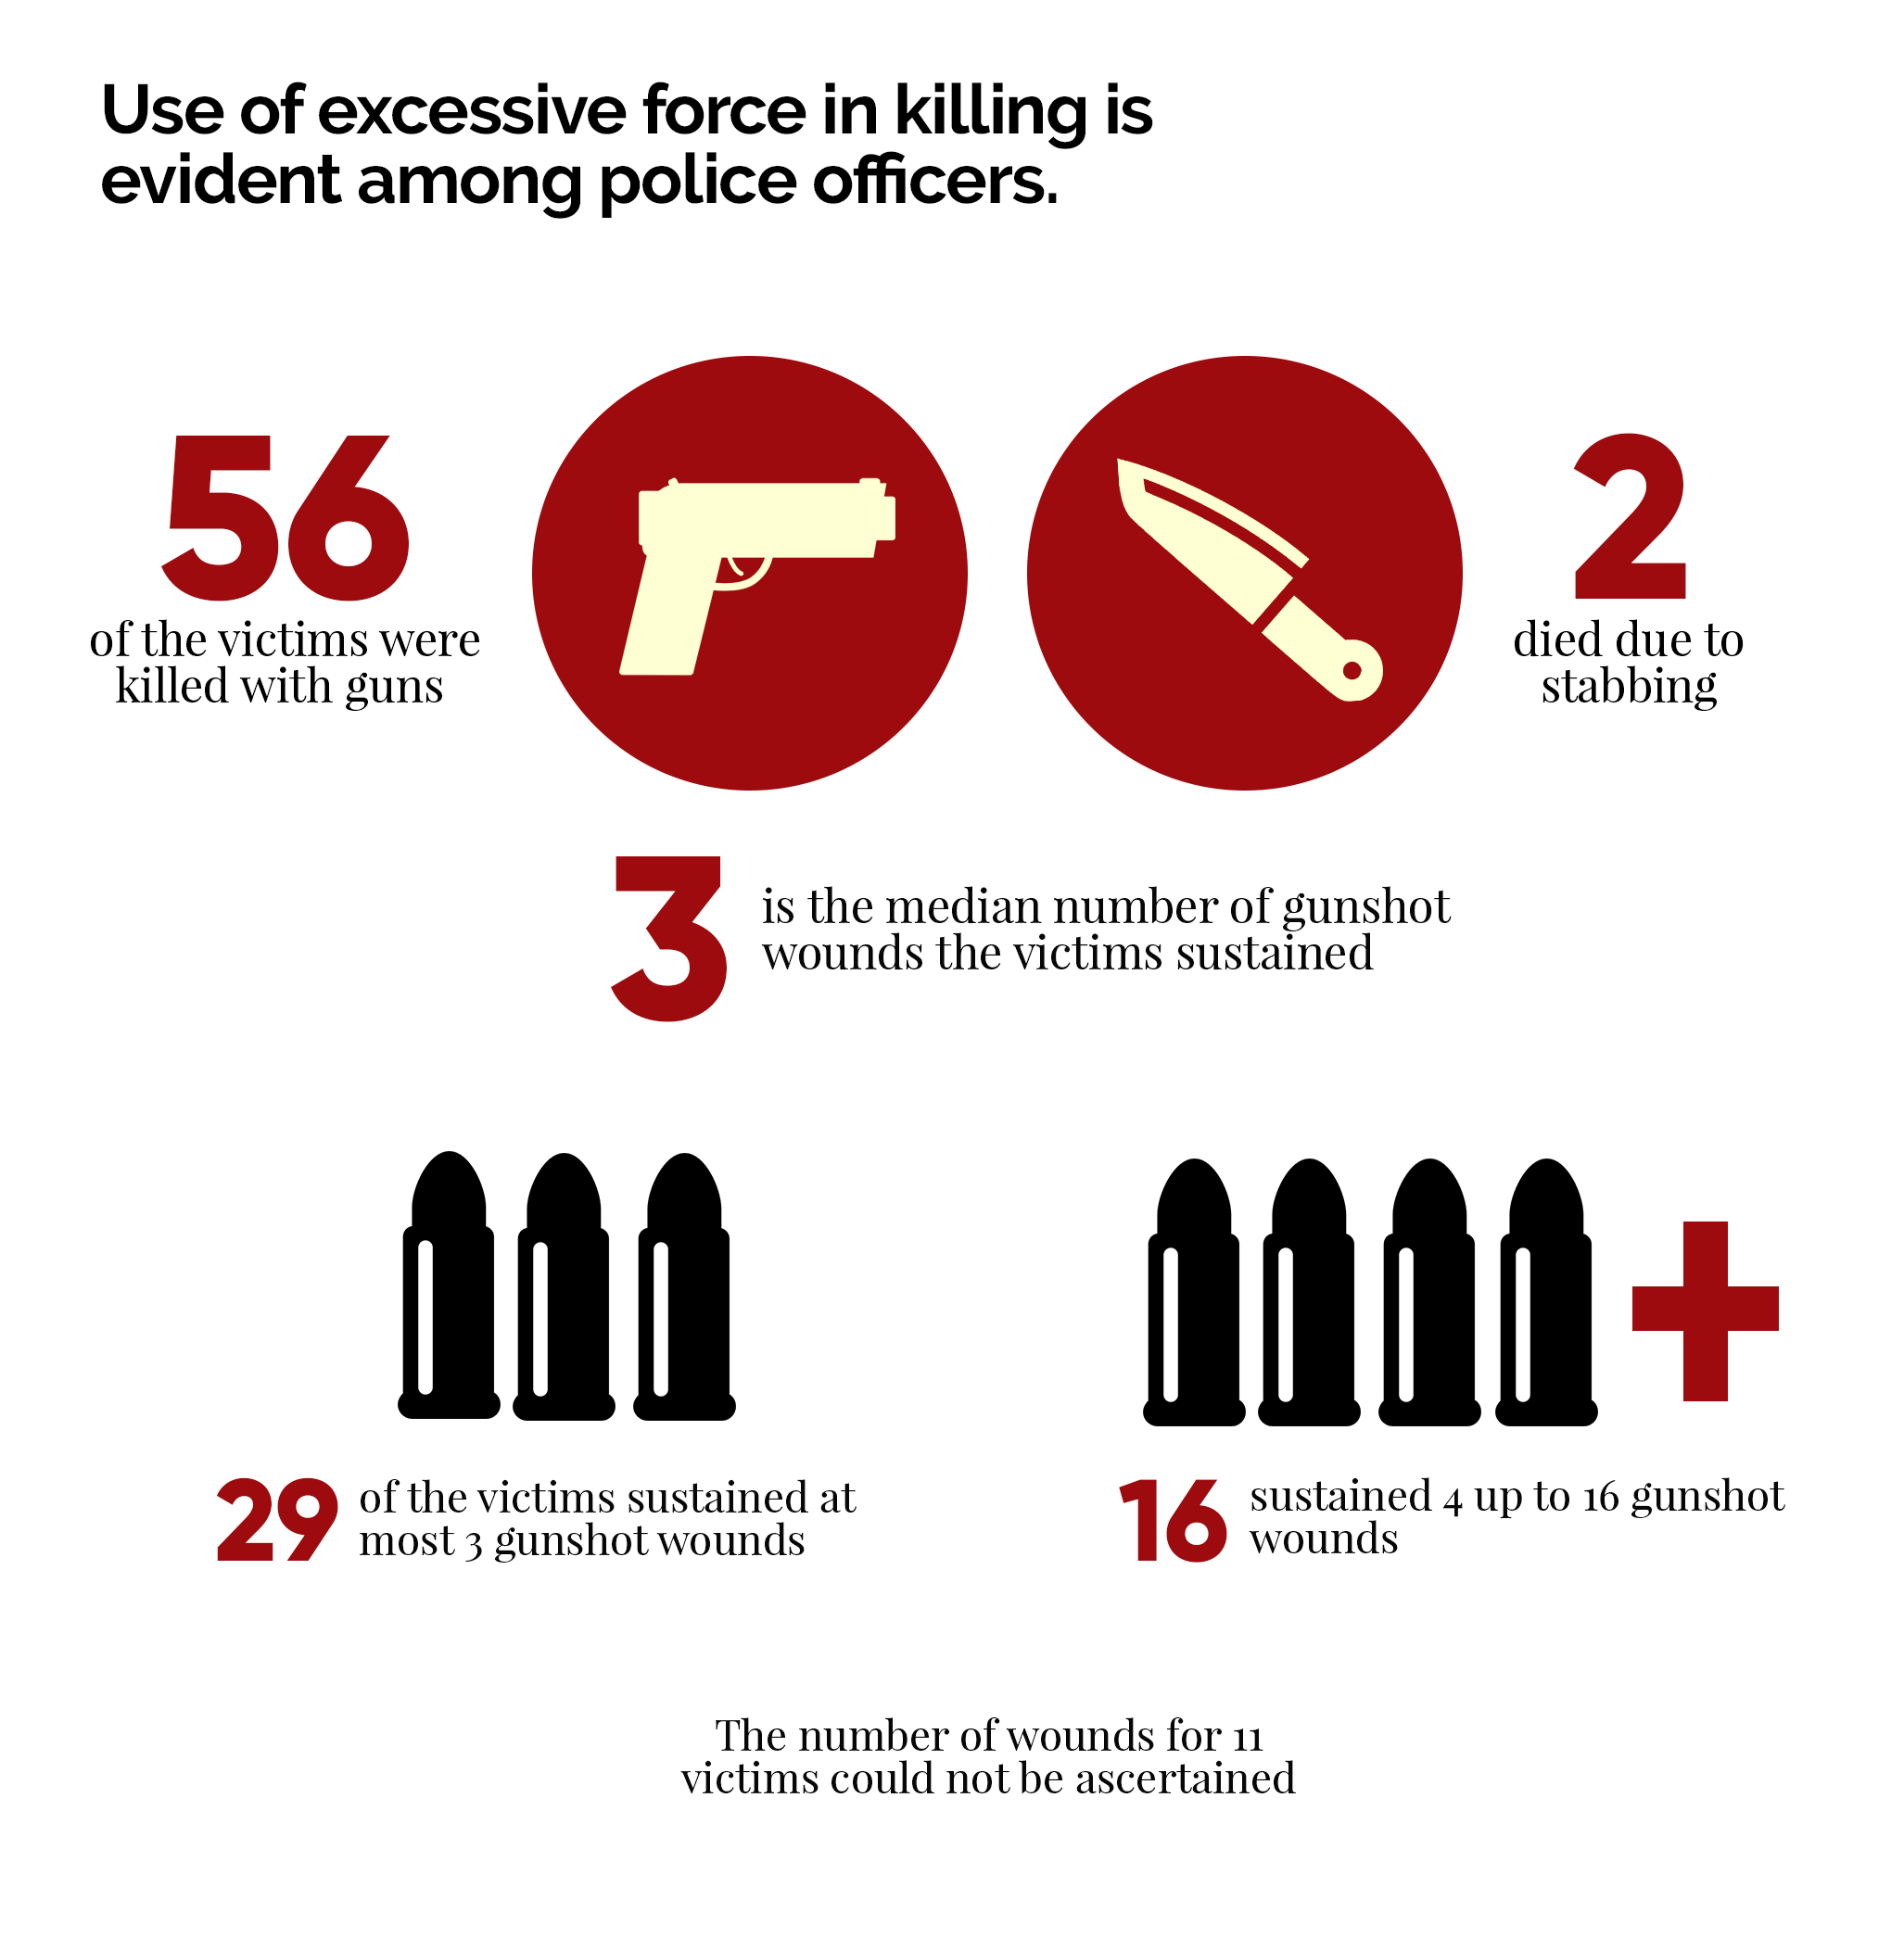 The War on the Poor: Extrajudicial Killings and their Effects on